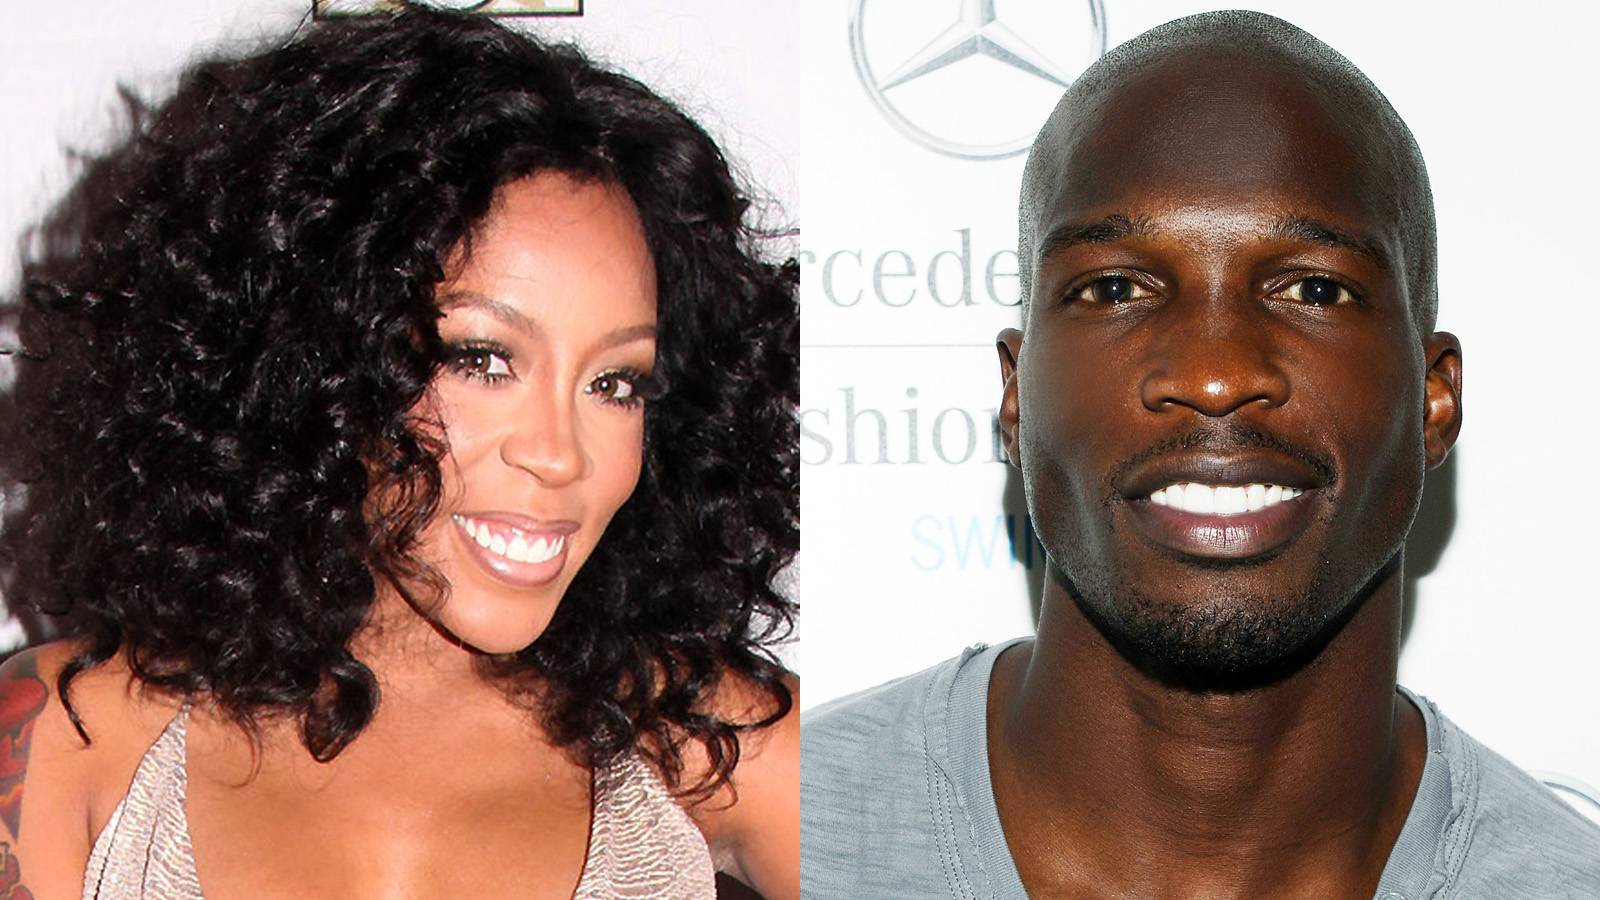 K. Michelle Talks Ochocinco's Penis Size - K. Michelle got really candid in a recent interview with Necole Bitchie. She talked everything from wanting to make amends with Tamar Braxton to sex and dating but about the latter, she got really explicit when it came to detailing Chad Ochocinco's penis. K. Michelle said she tried to date the footballer but that his extremely large penis was a deterrent. Um...OK. Check out the full interview here.   (Photos from left: Paul Redmond/WireImage, Michael Buckner/Getty Images for Mercedes-Benz)